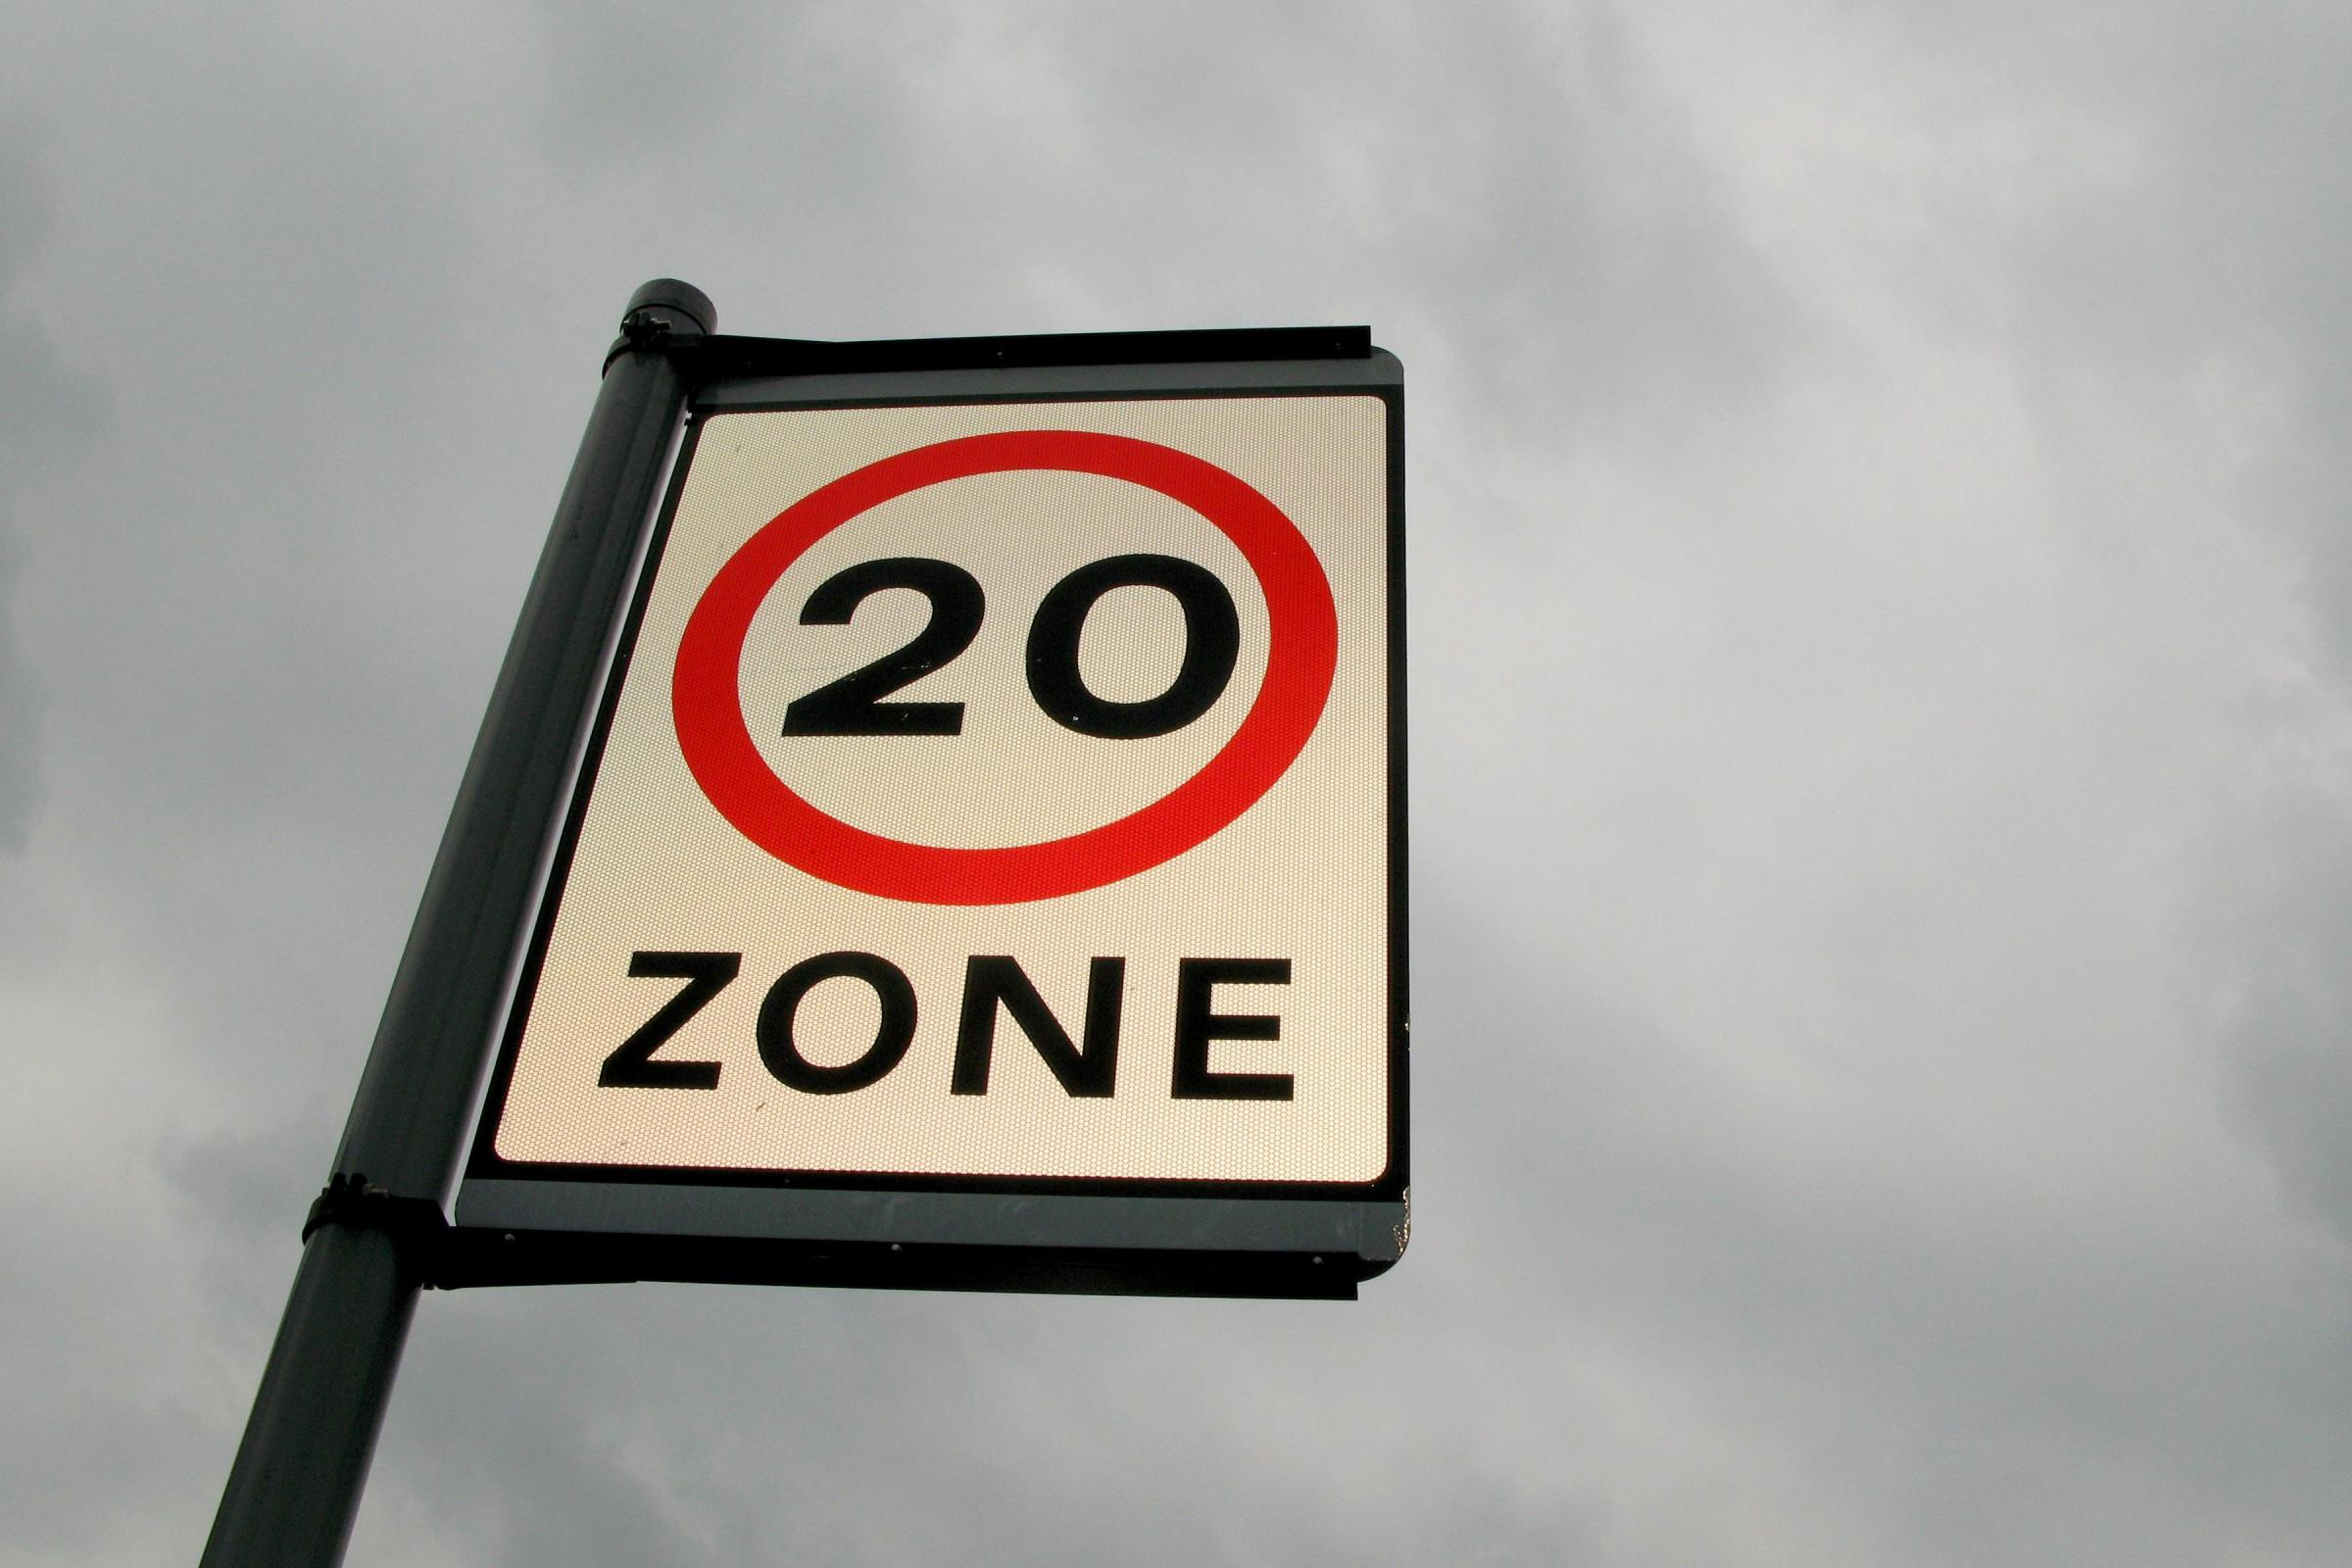 20mph limit road sign